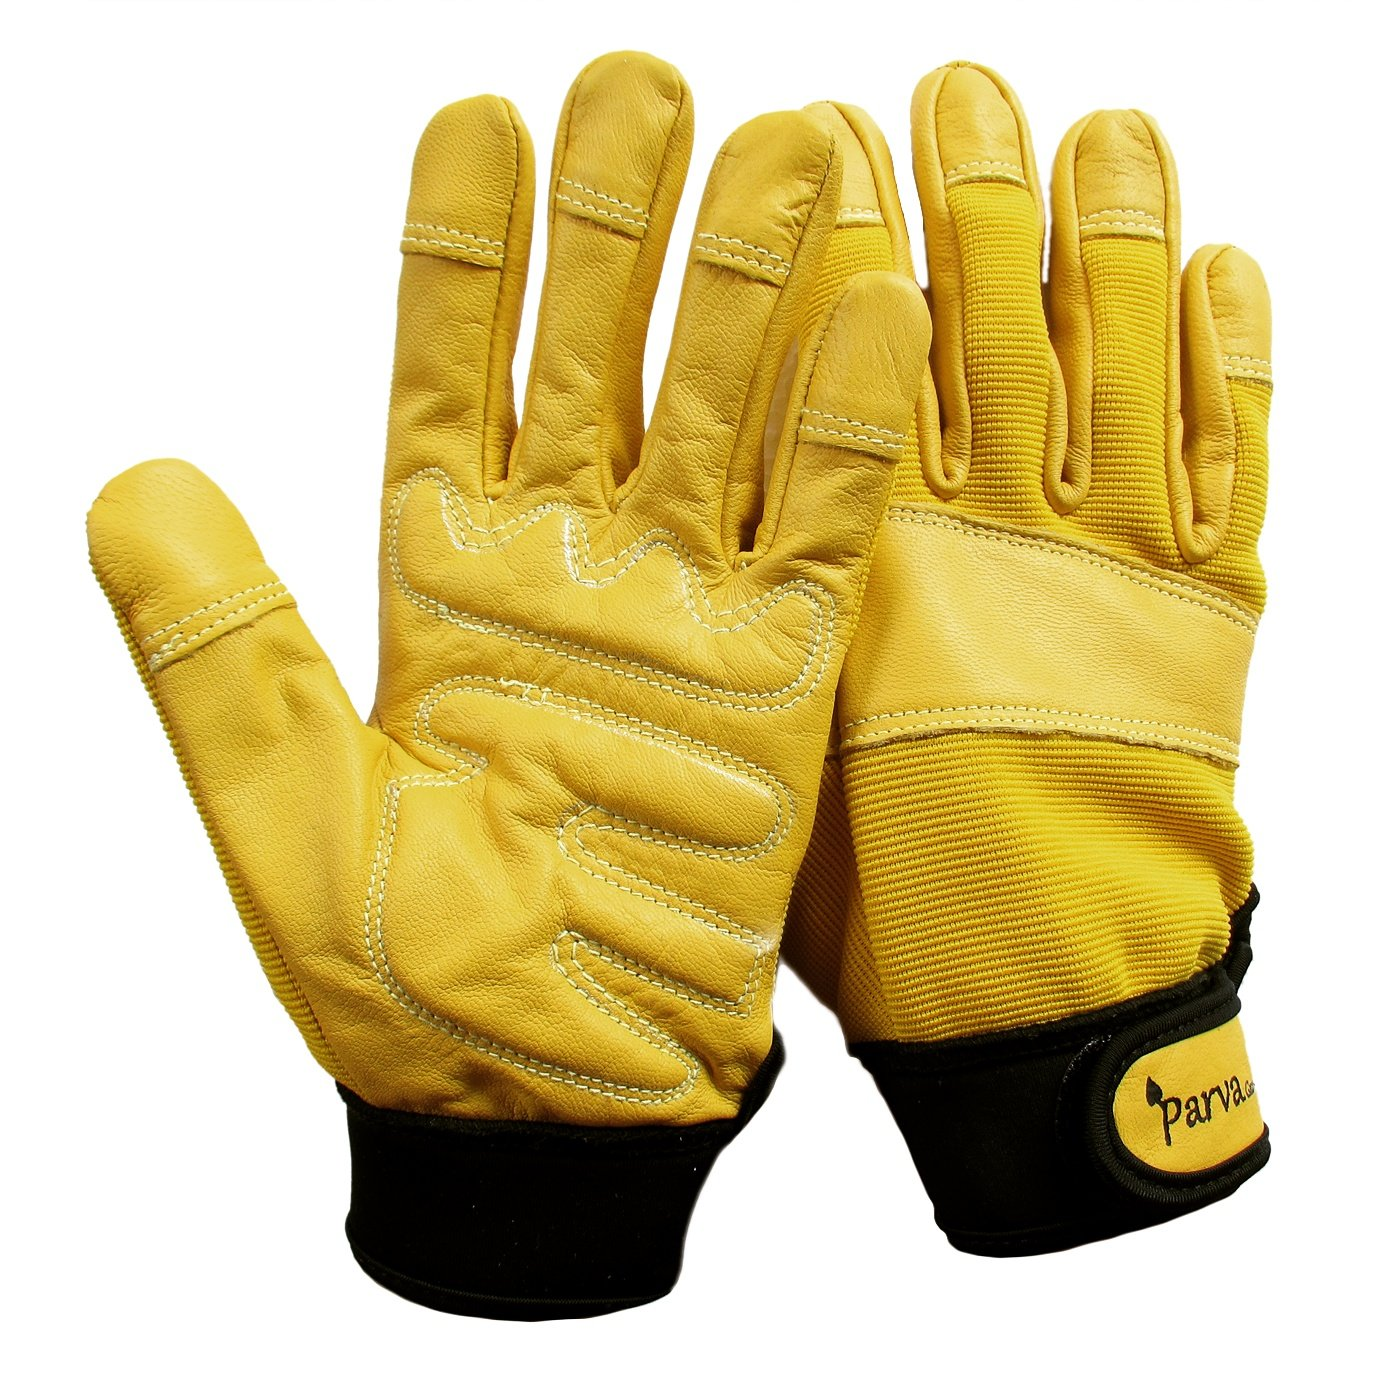 Gardening Gloves, Leather Garden Gloves Thorn Proof Gloves with Padded Palms, Work Gloves (Large, Yellow)